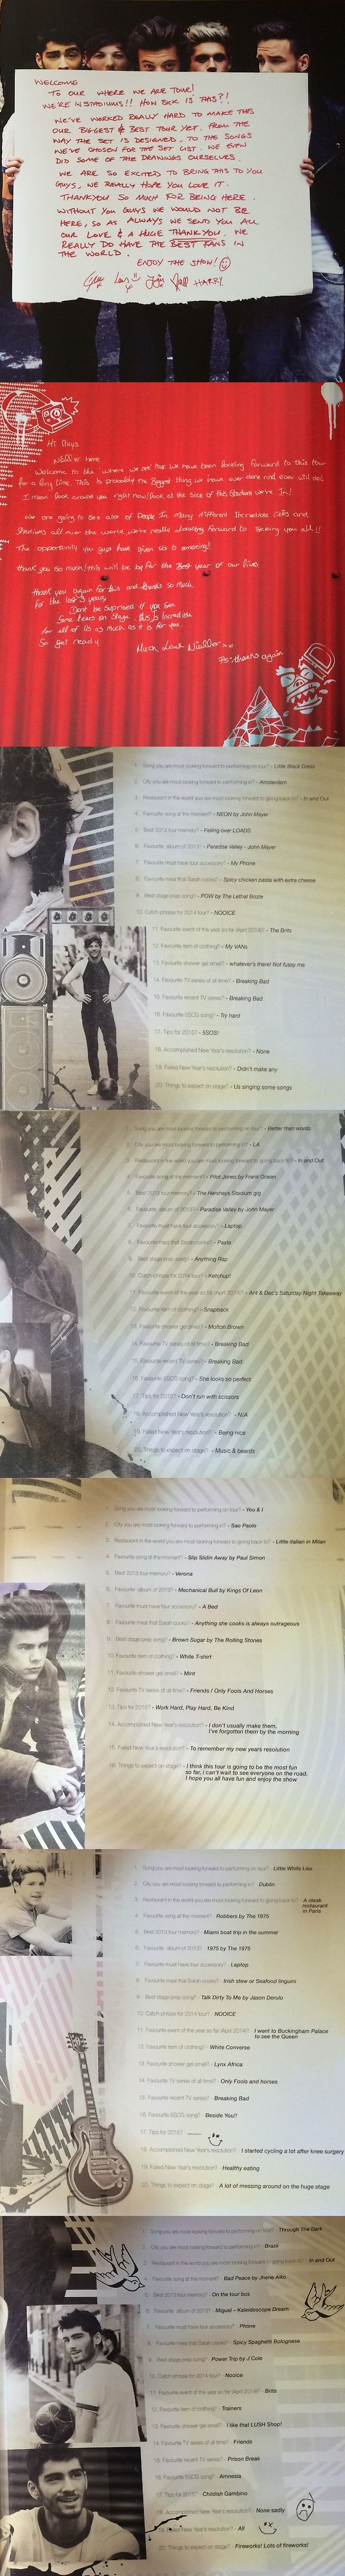 One Direction Where We Are Tour booklet (pt. 2)